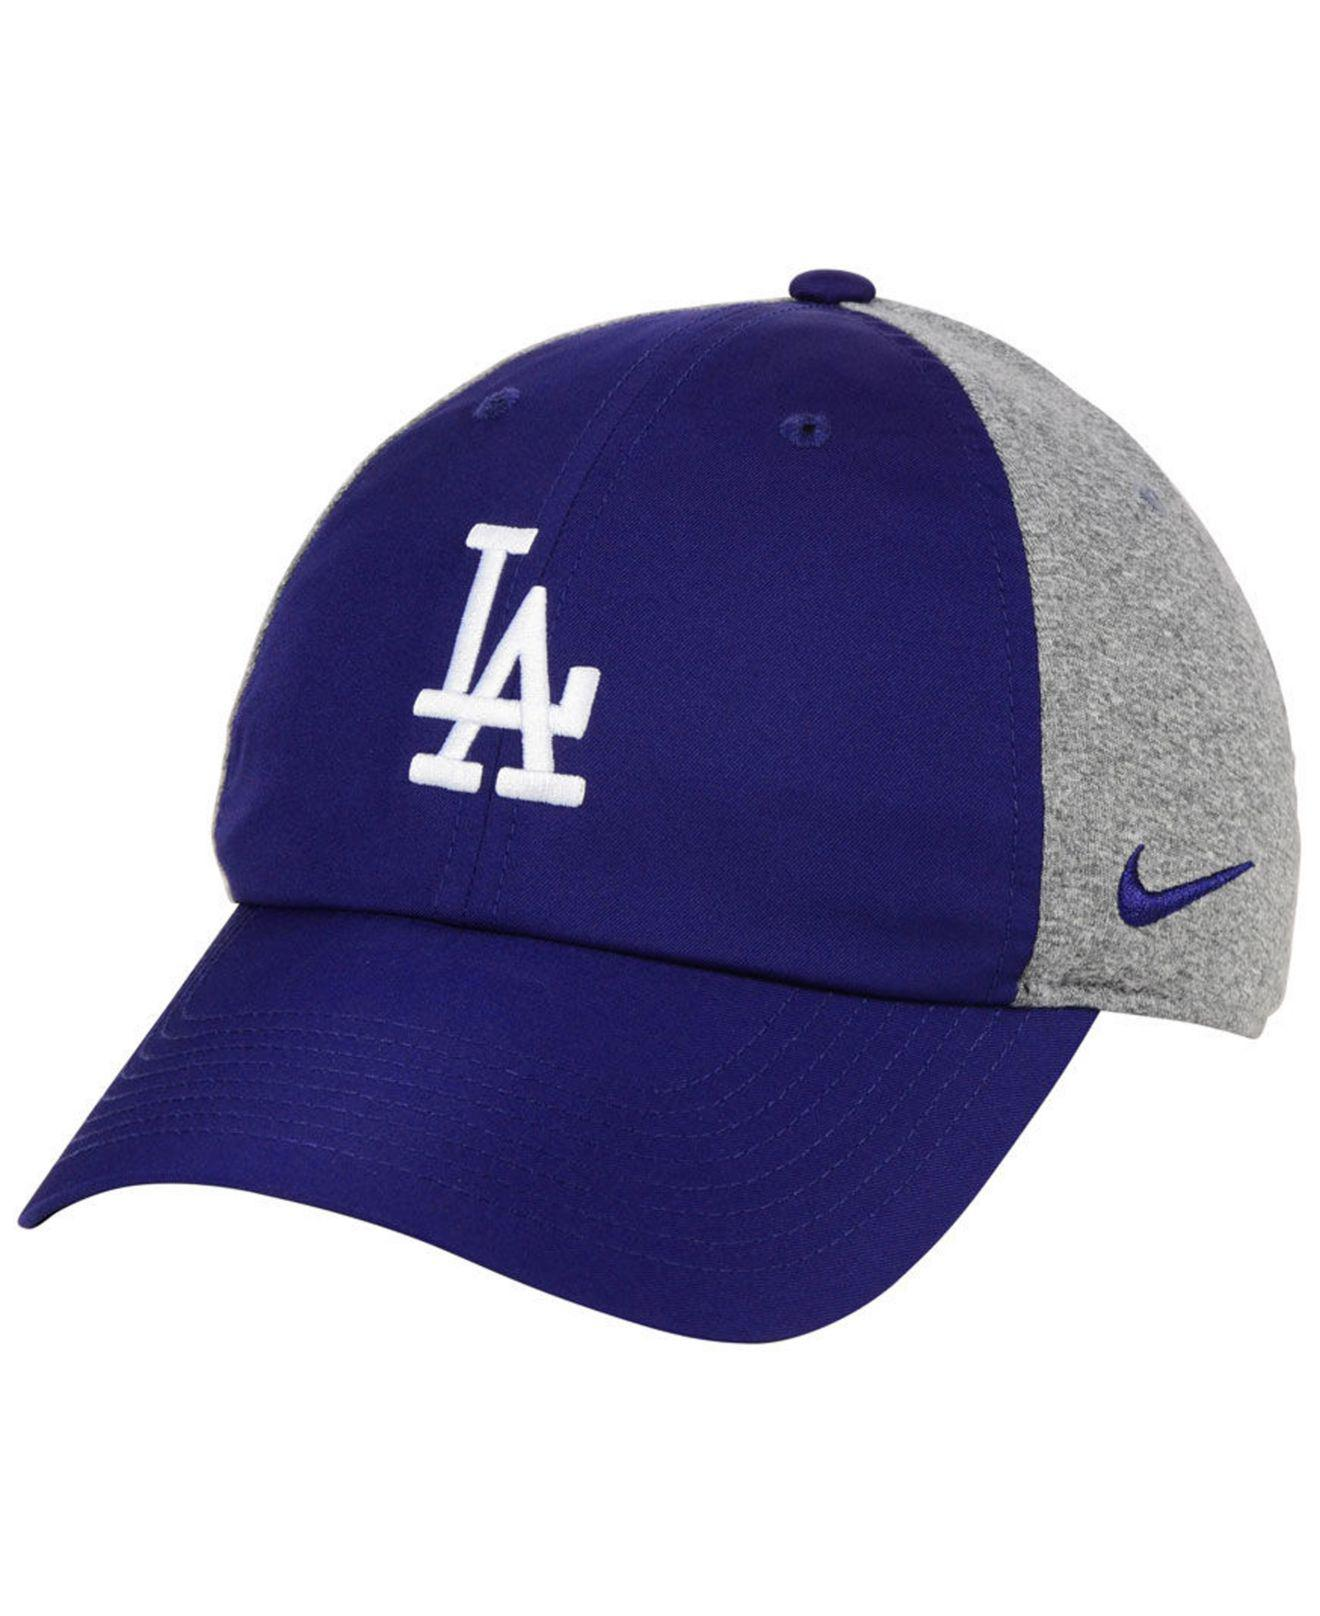 Lyst - Nike Los Angeles Dodgers New Day Legend Cap in Blue for Men e8b335074e30